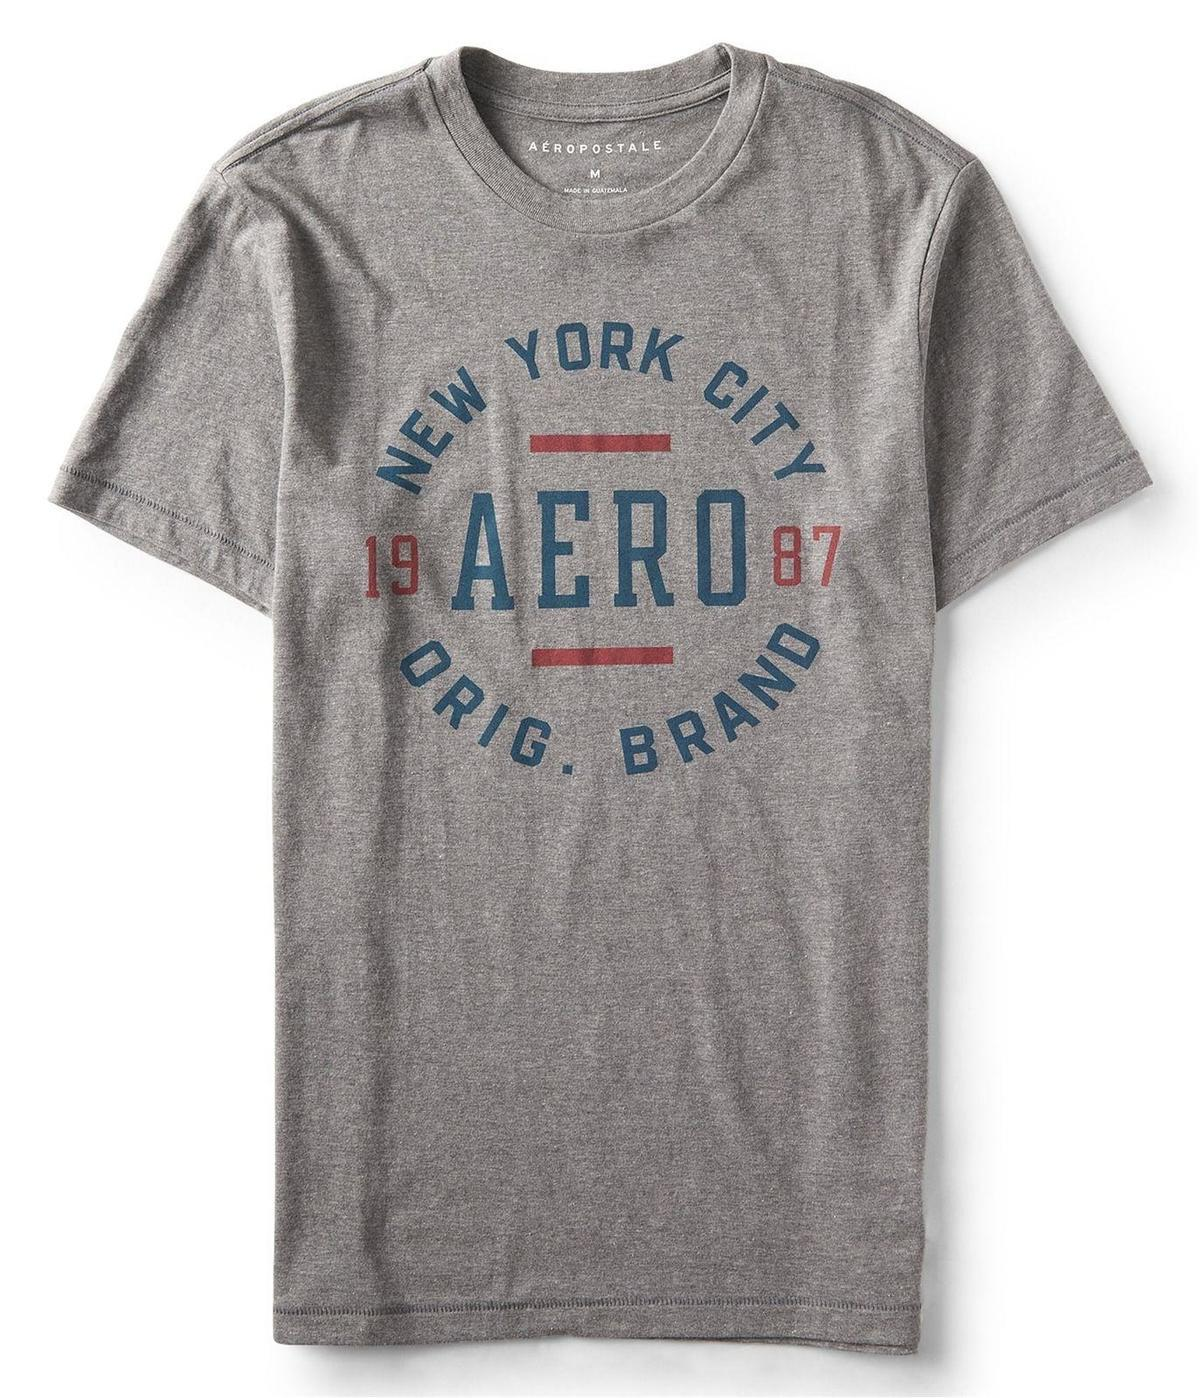 ad55ef53c4 Aeropostale Mens New York City Brand Graphic T-Shirt 053 XS